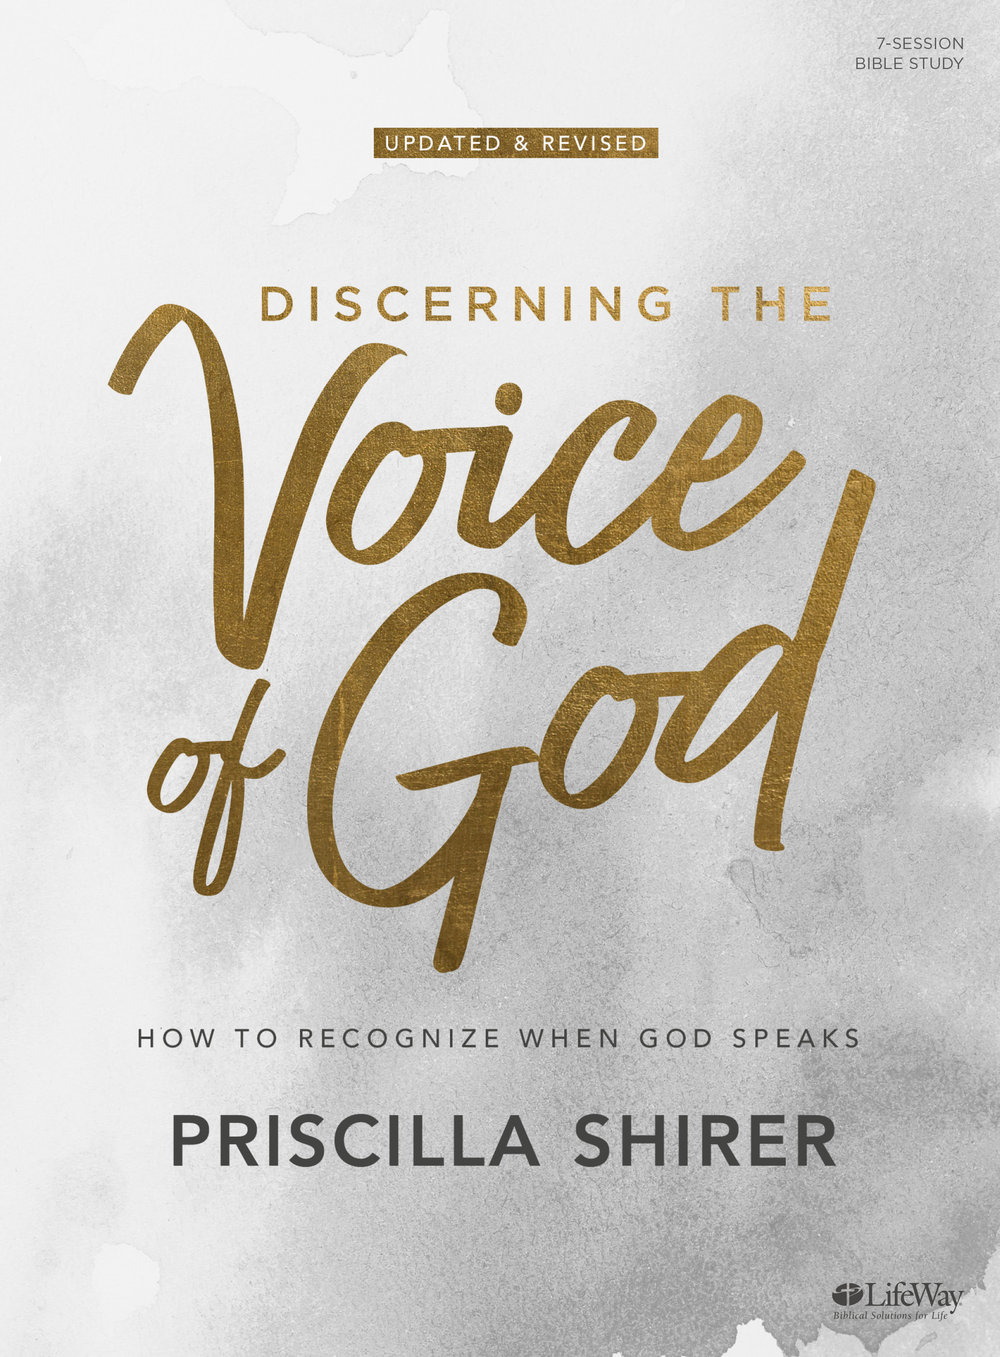 Discerning the Voice of God; Priscilla Shirer